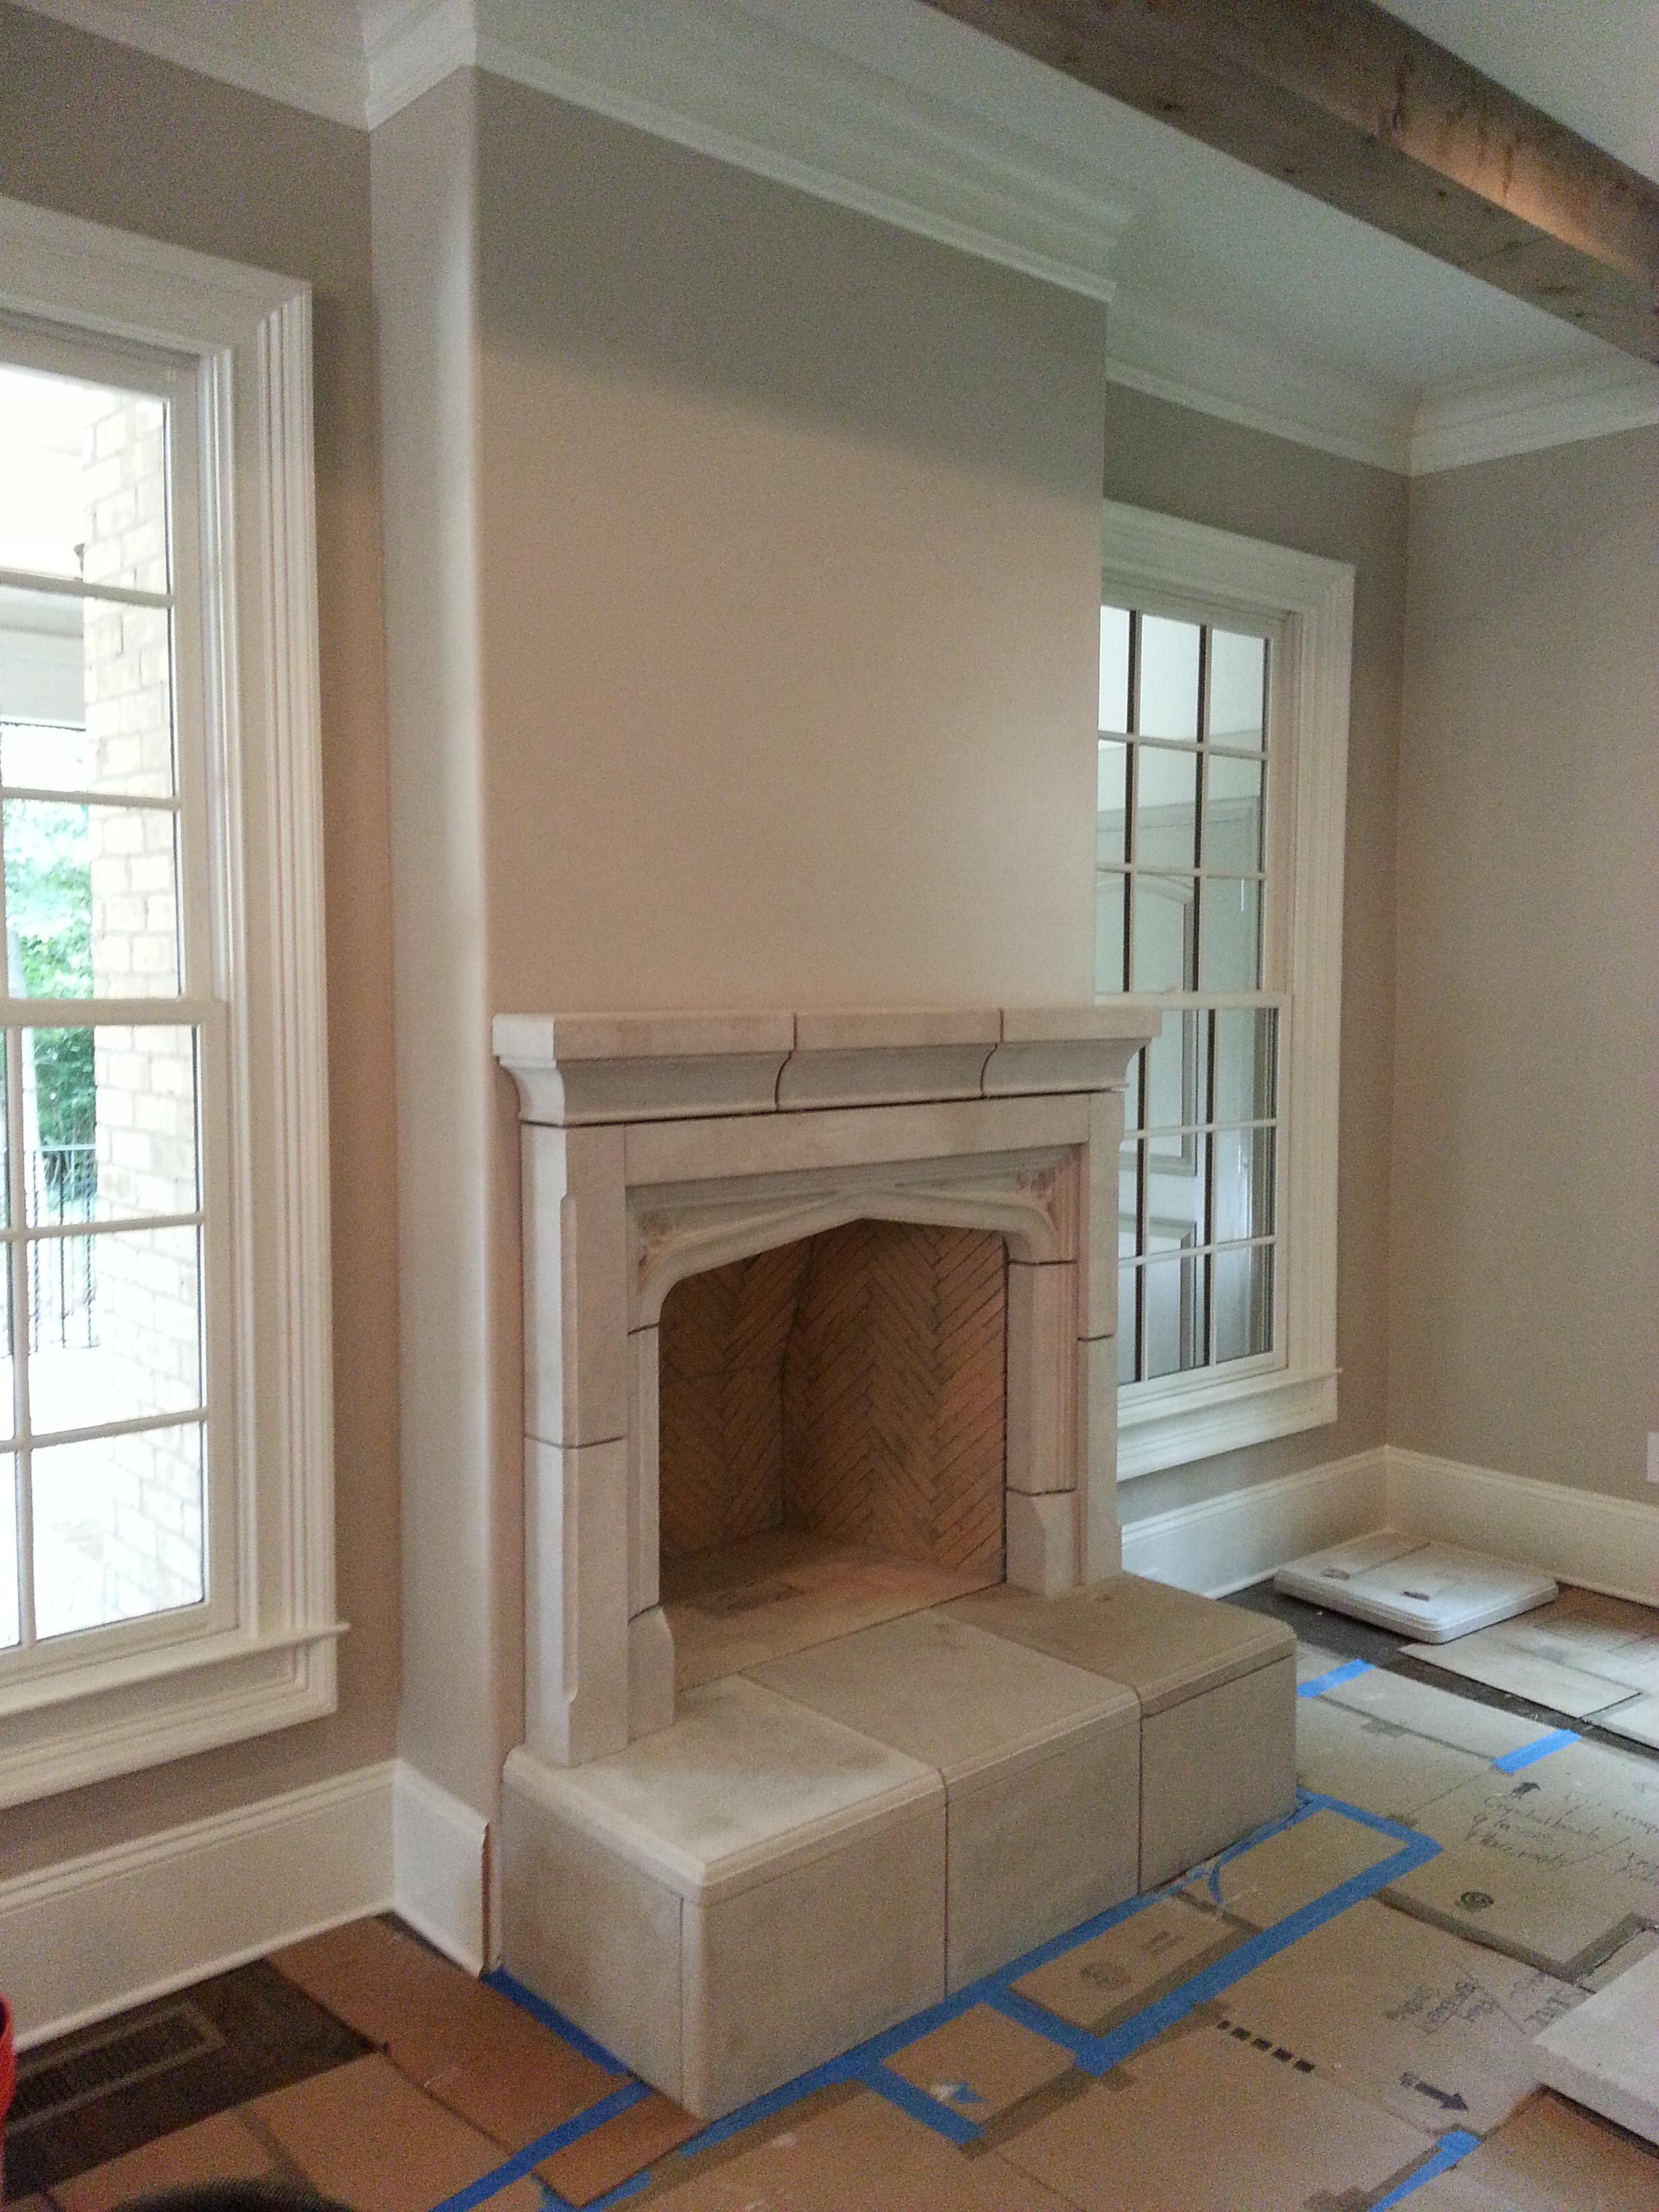 Fireplace Raised Hearth. Example 38  Tudor Limestone Mantle config C scaled smaller than normal to fit application with raised sitting hearth Artisans Fireplaces